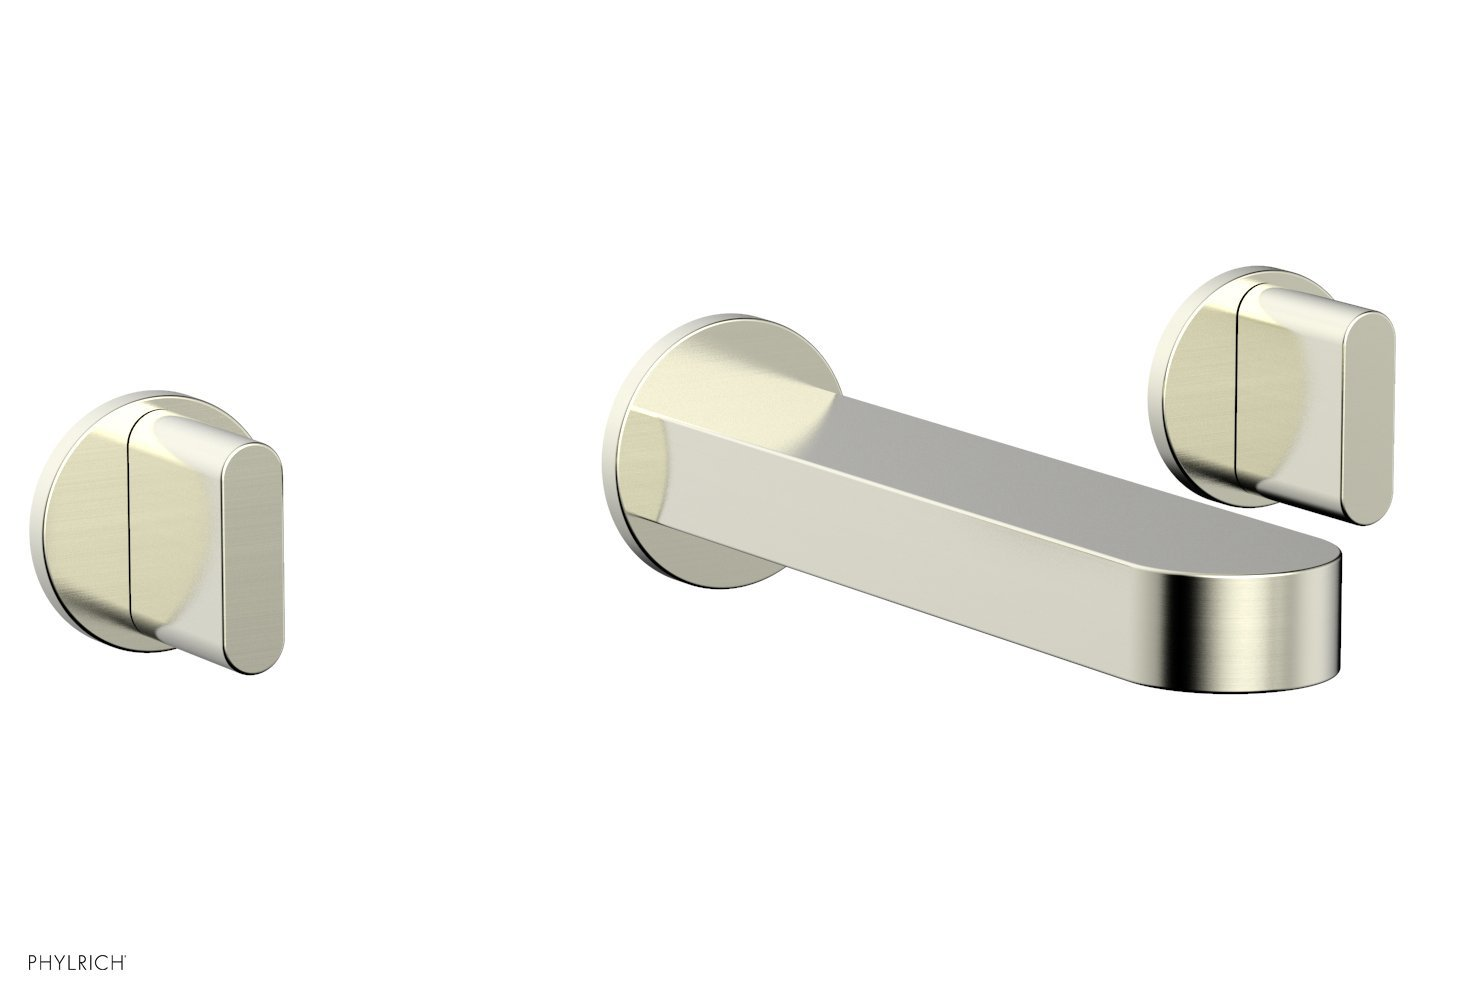 Phylrich 183-56-015 ROND Wall Tub Set - Blade Handles - Satin Nickel